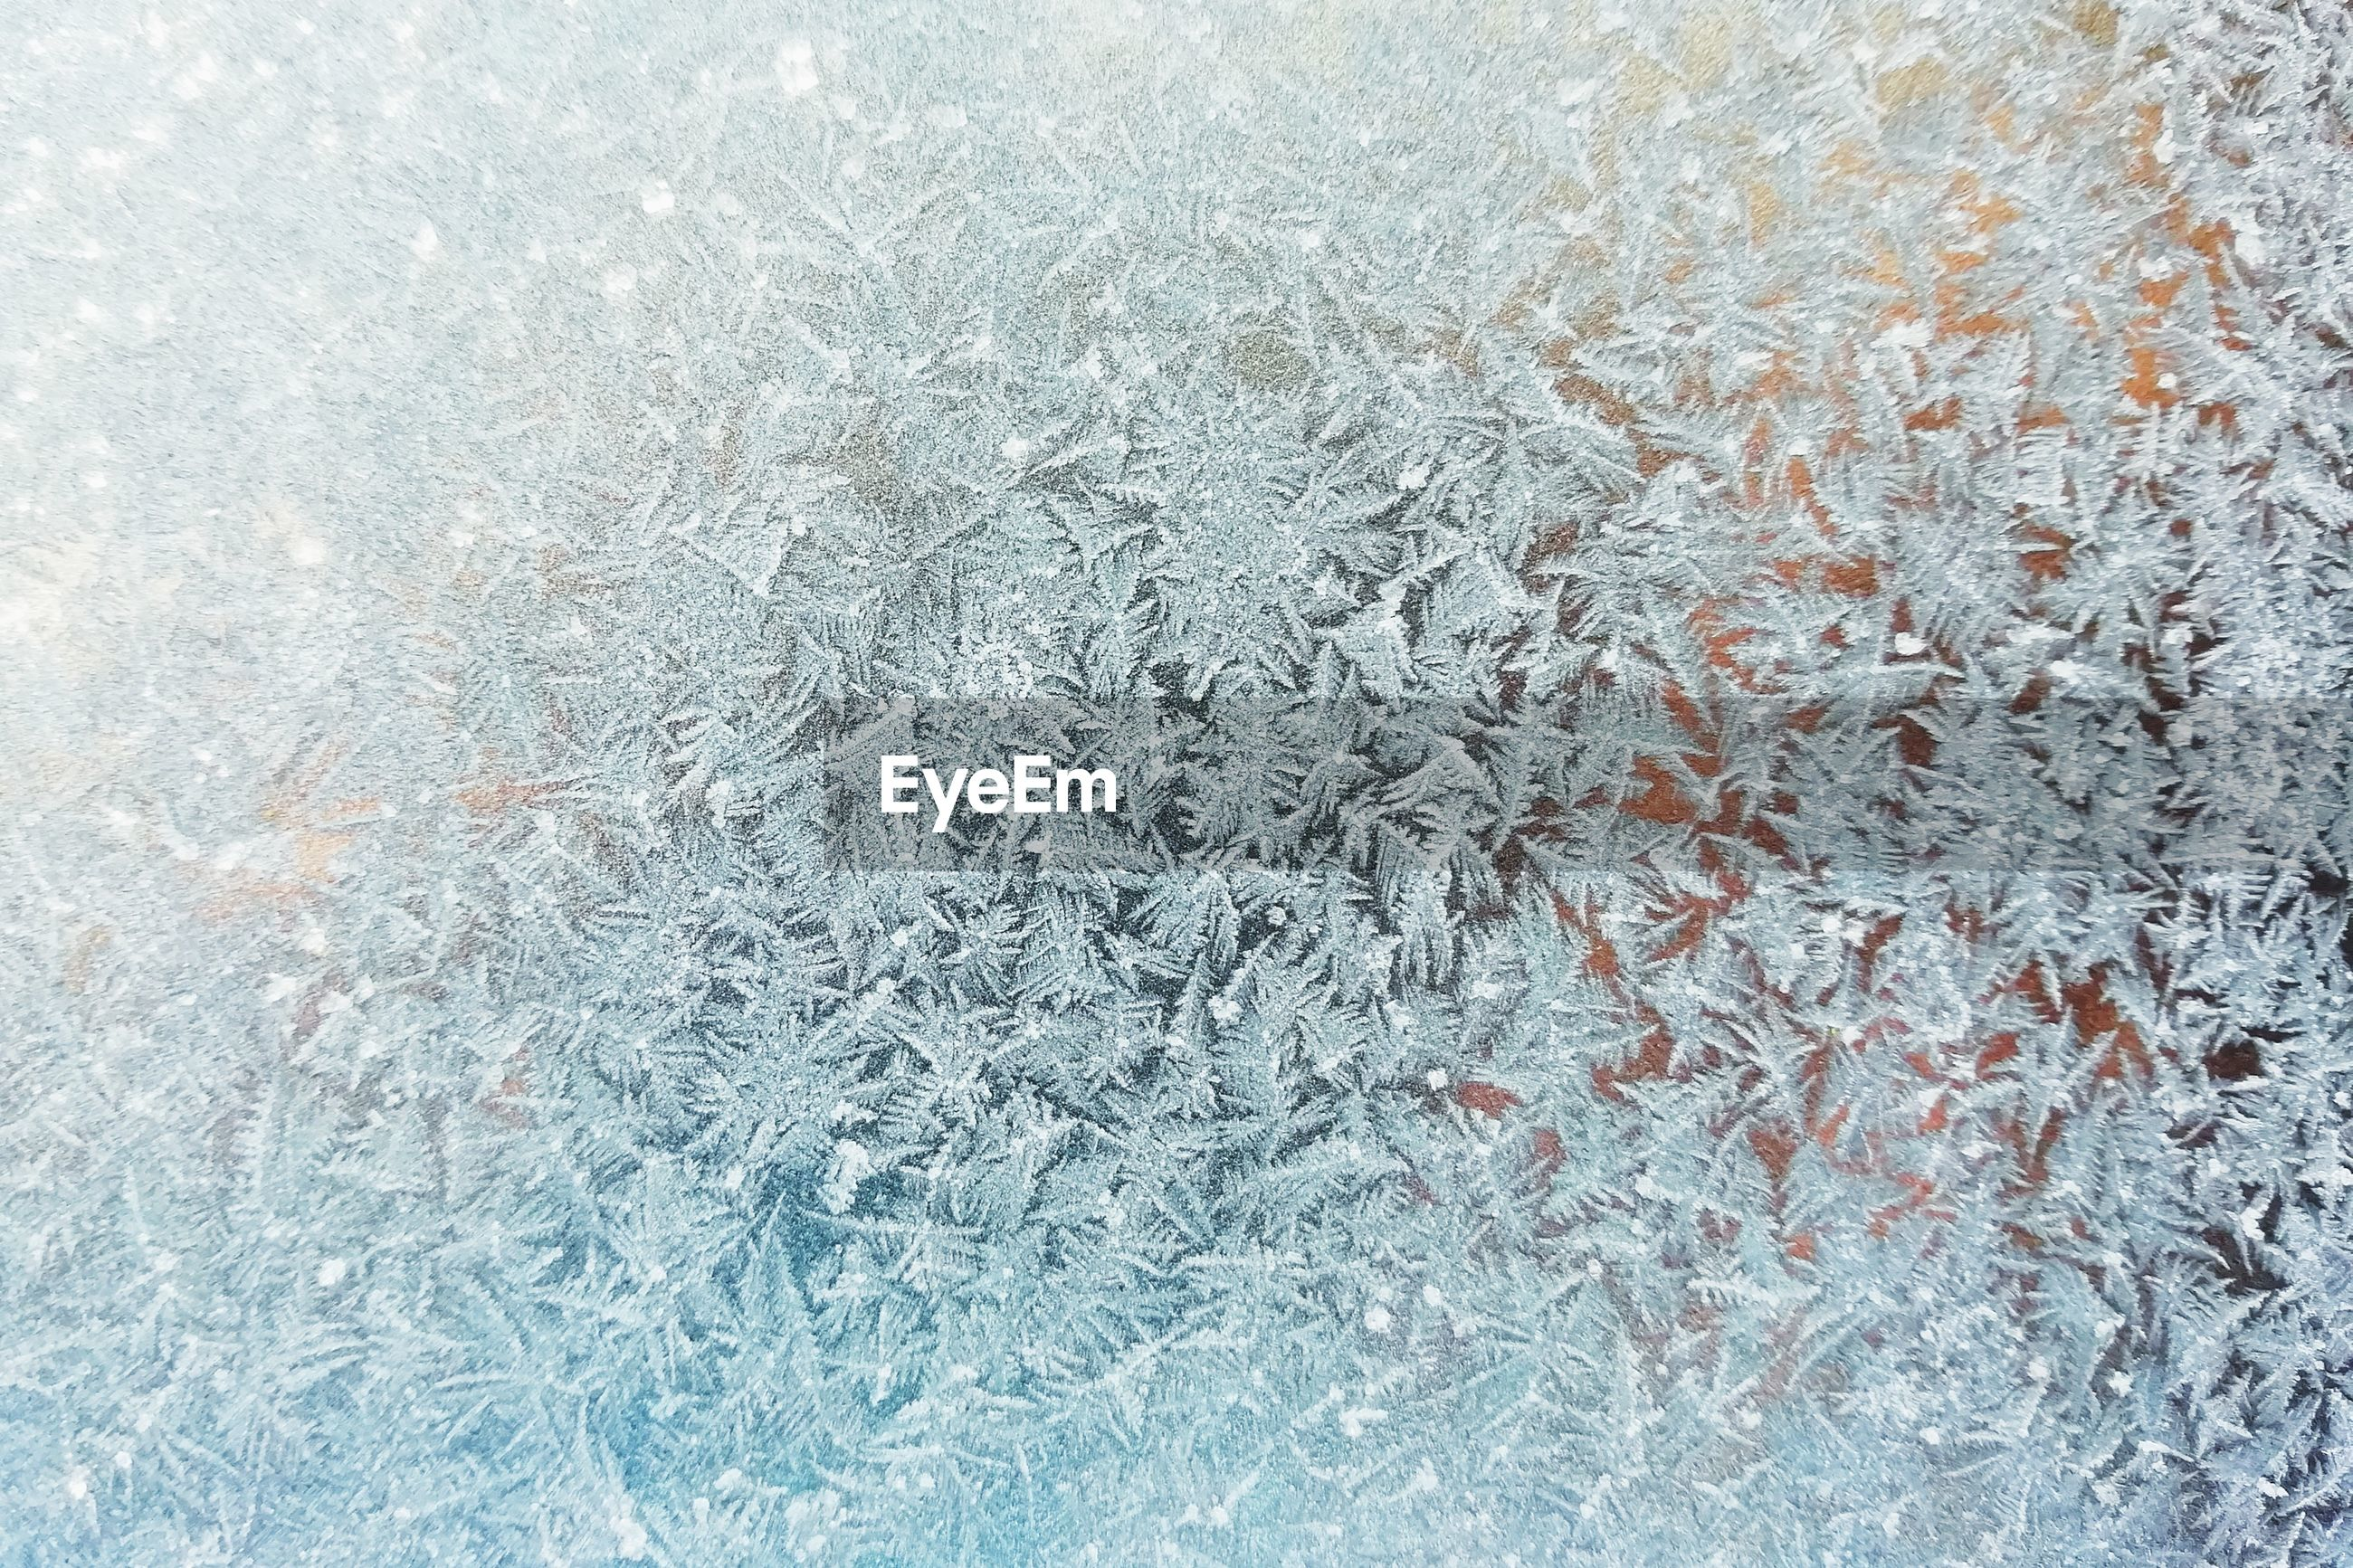 backgrounds, full frame, cold temperature, winter, ice, frozen, snow, no people, close-up, pattern, textured, window, glass - material, snowflake, frost, abstract, nature, indoors, crystal, glass, textured effect, purity